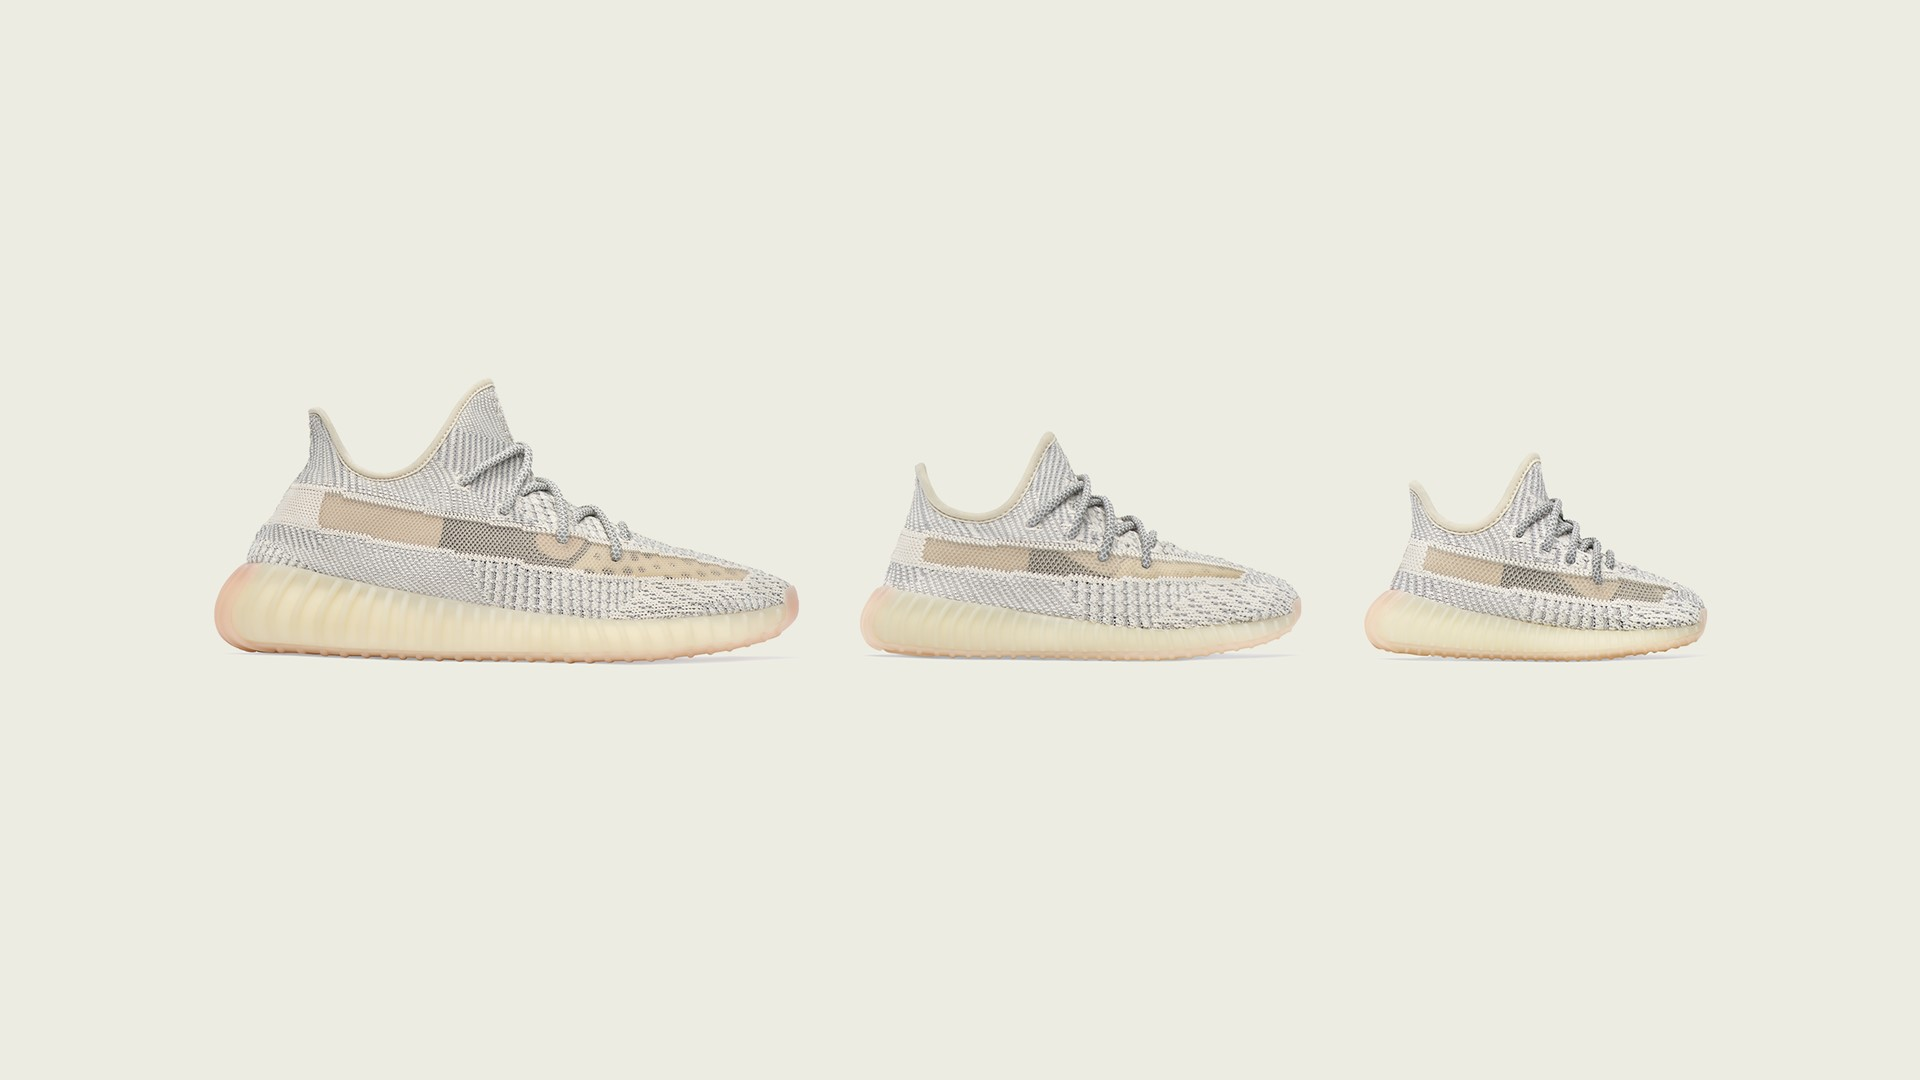 adidas + KANYE WEST announce the YEEZY BOOST 350 V2 Lundmark